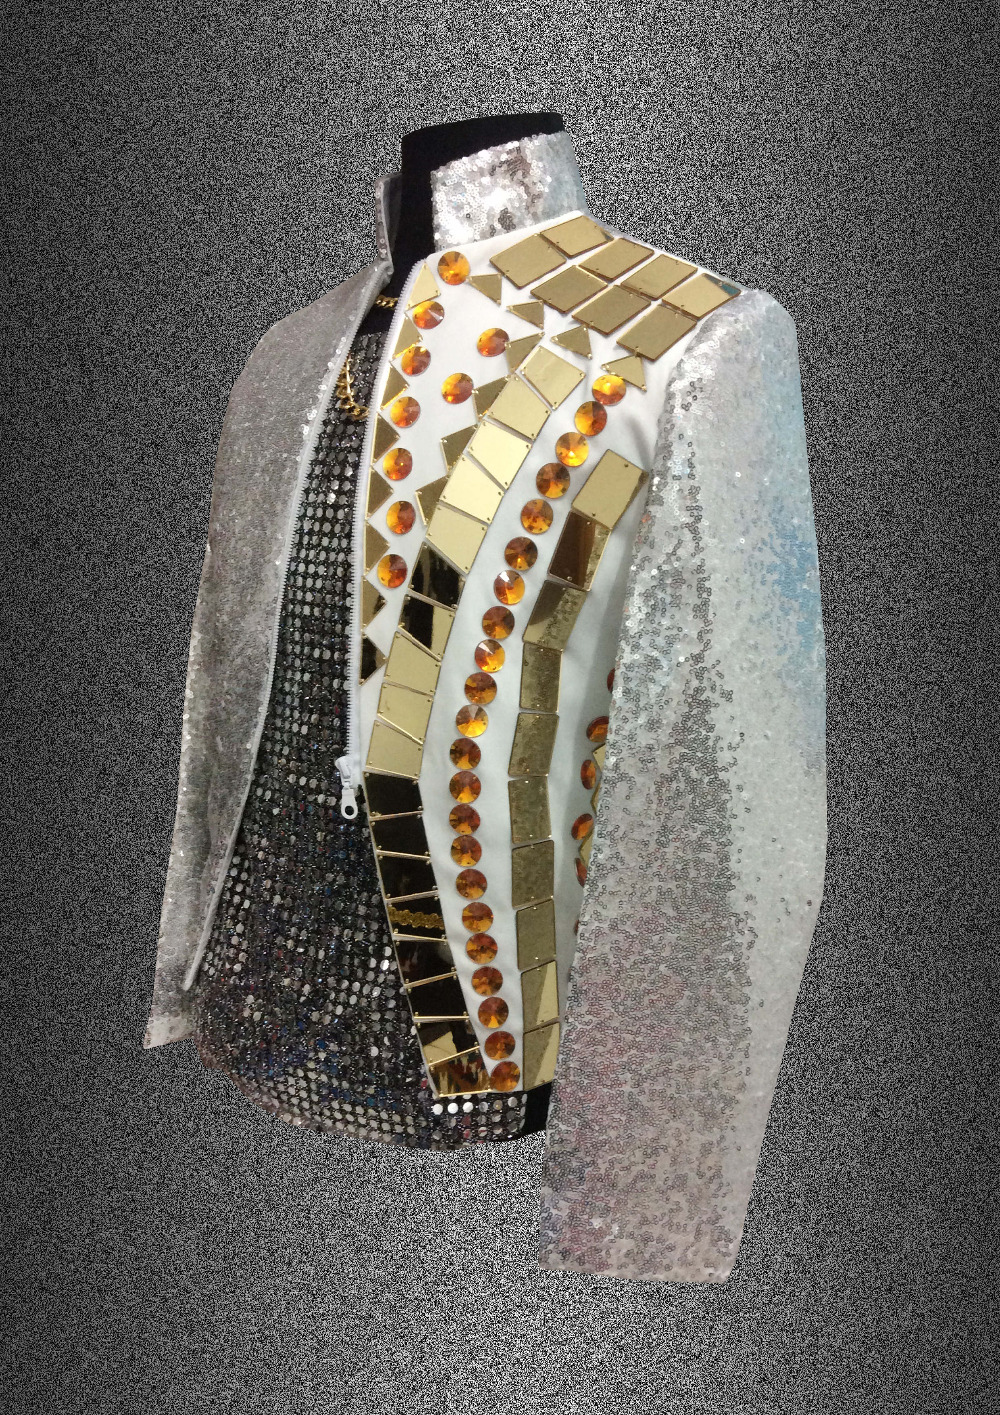 Gold mirror men blazers Shining Sequins jacket outwear male clothes singer dancer performance dress fashion nightclub Bar Outfit